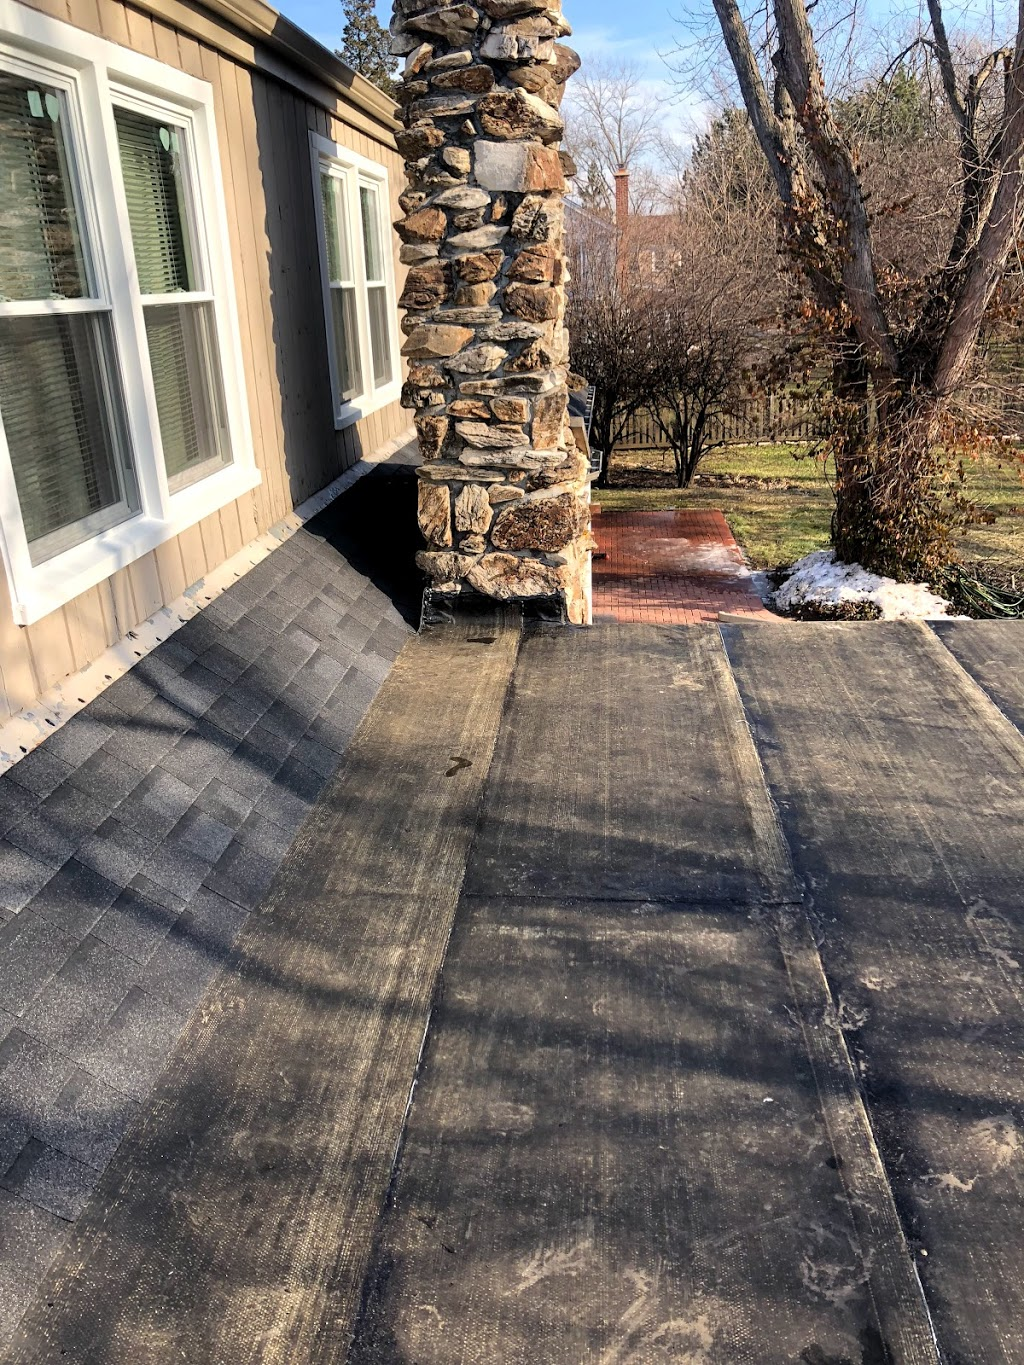 General Roofing Inc - roofing contractor    Photo 7 of 10   Address: 924 E Old Willow Rd APT 202, Prospect Heights, IL 60070, USA   Phone: (773) 226-1223